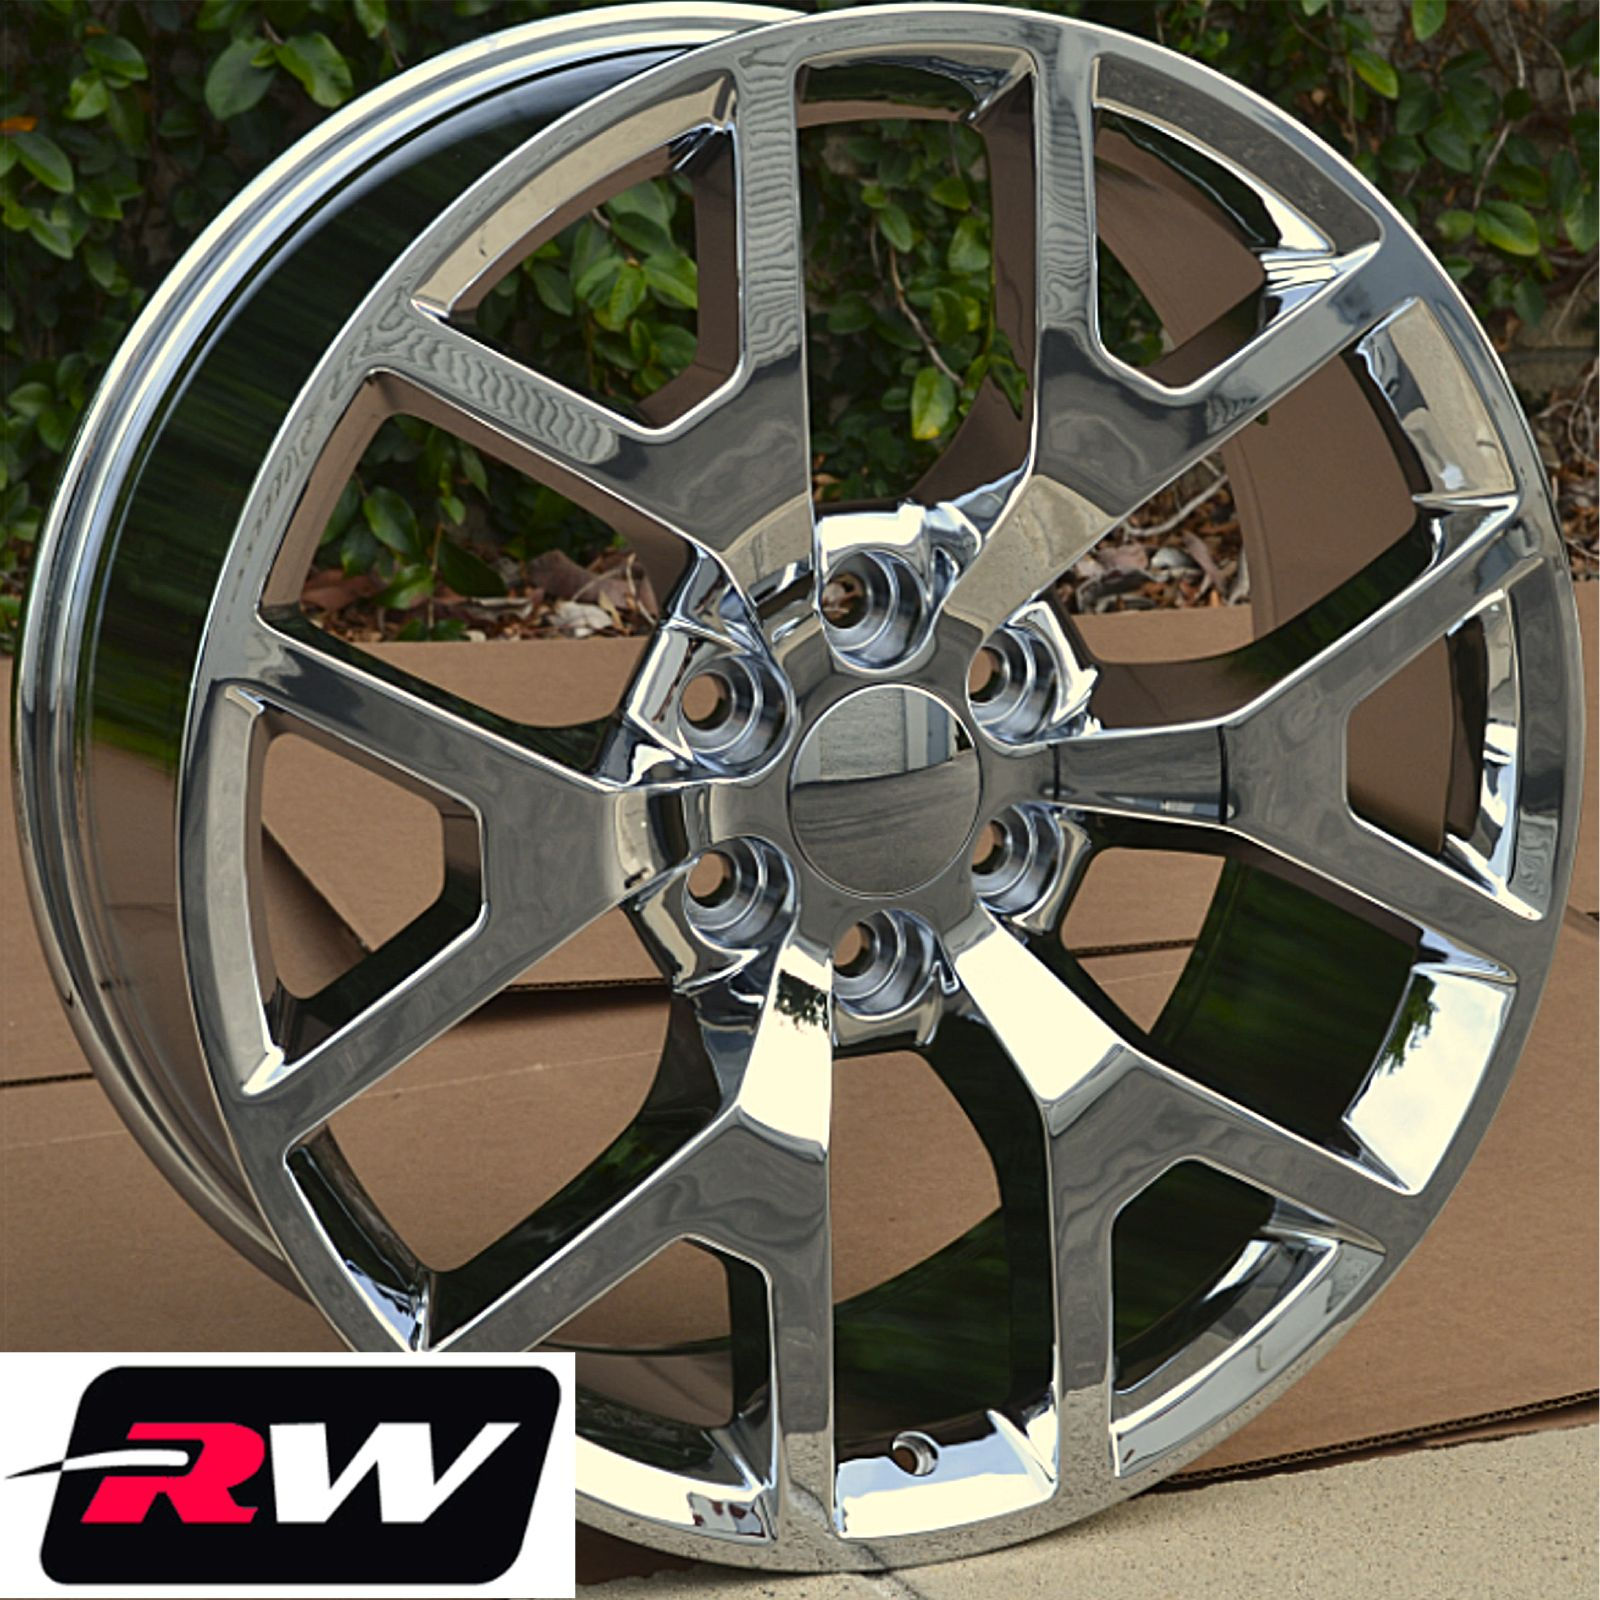 50 Inch Rims : Gmc sierra chrome wheels inch rims